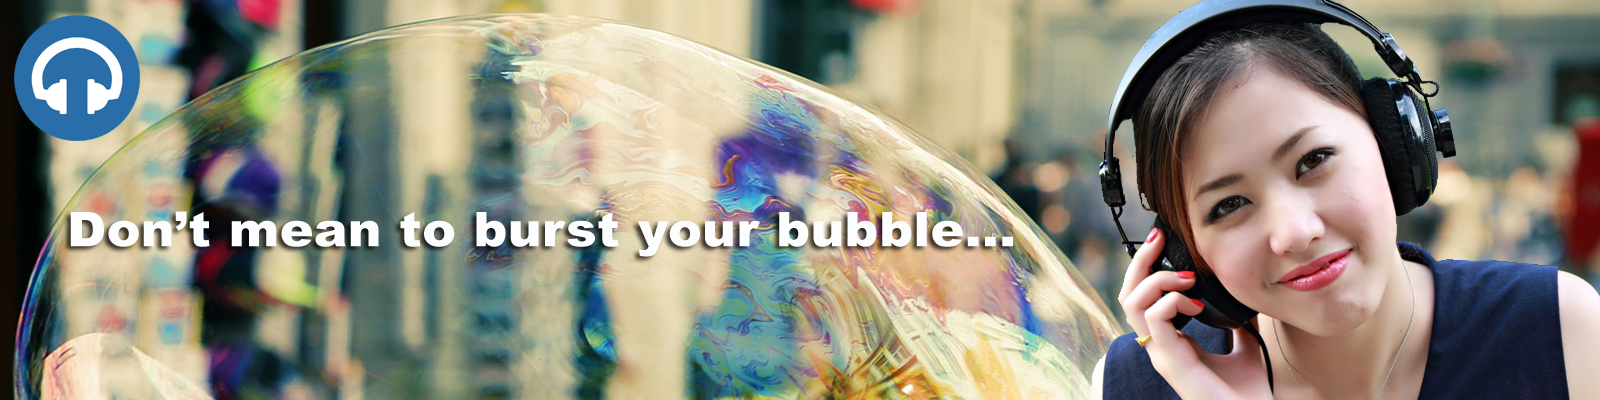 Burst Your Bubble 01.jpg